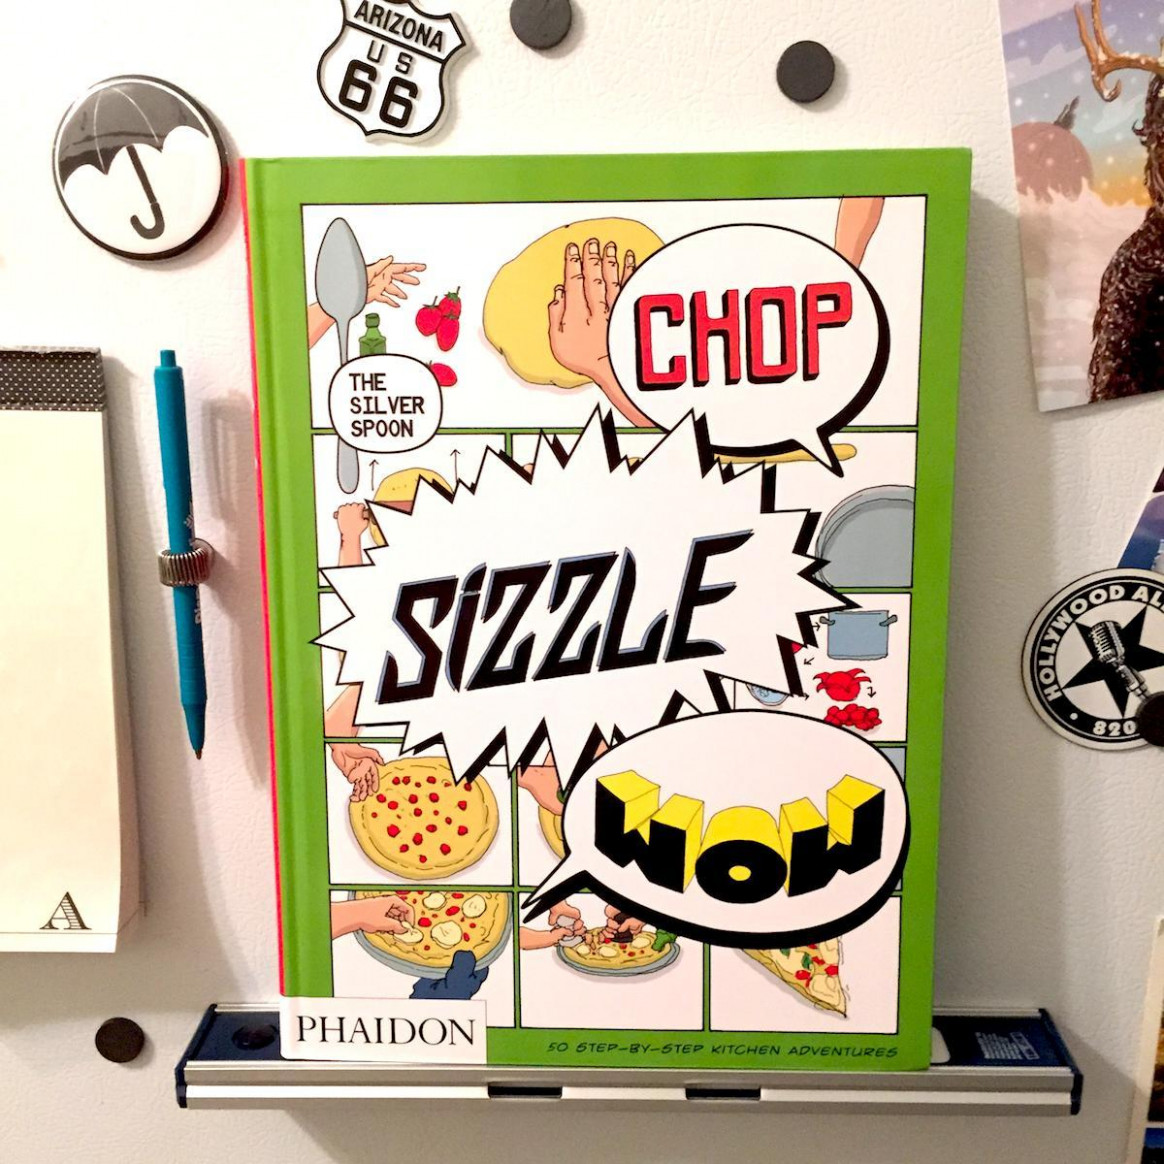 Chop Sizzle Wow – A delightful cookbook and comic..